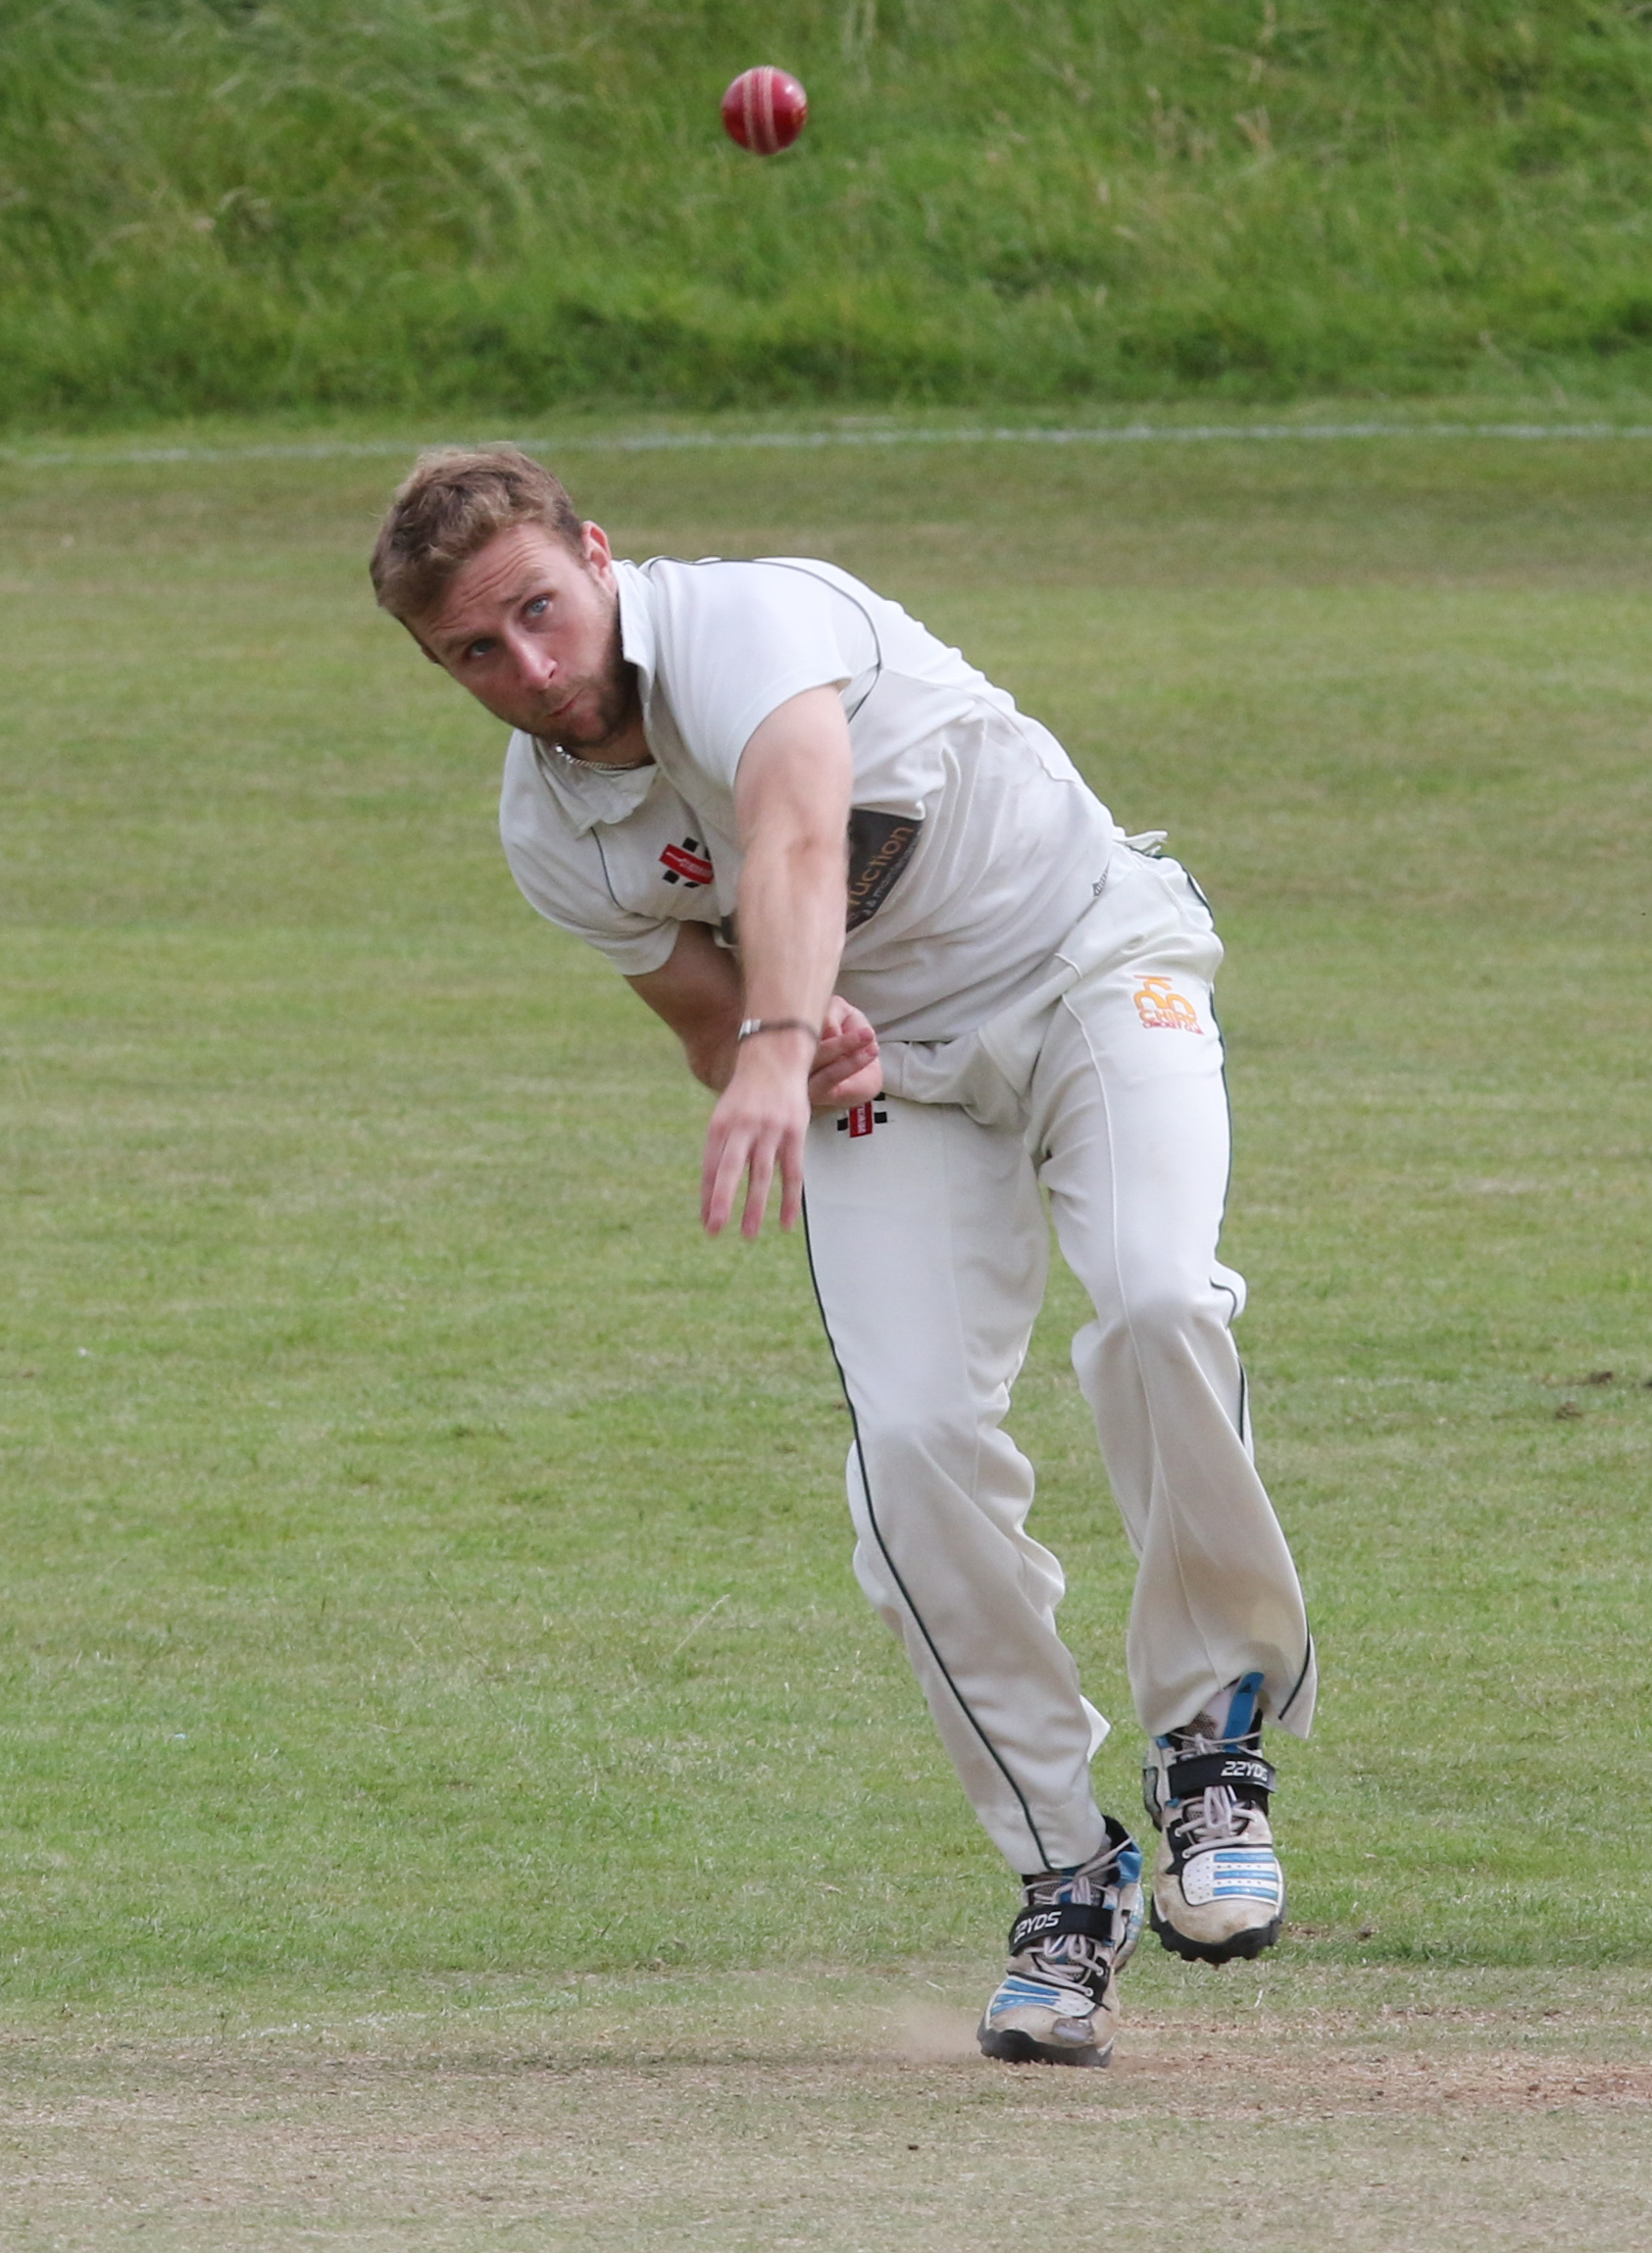 Captain Swarbrick leads by example for Chirk